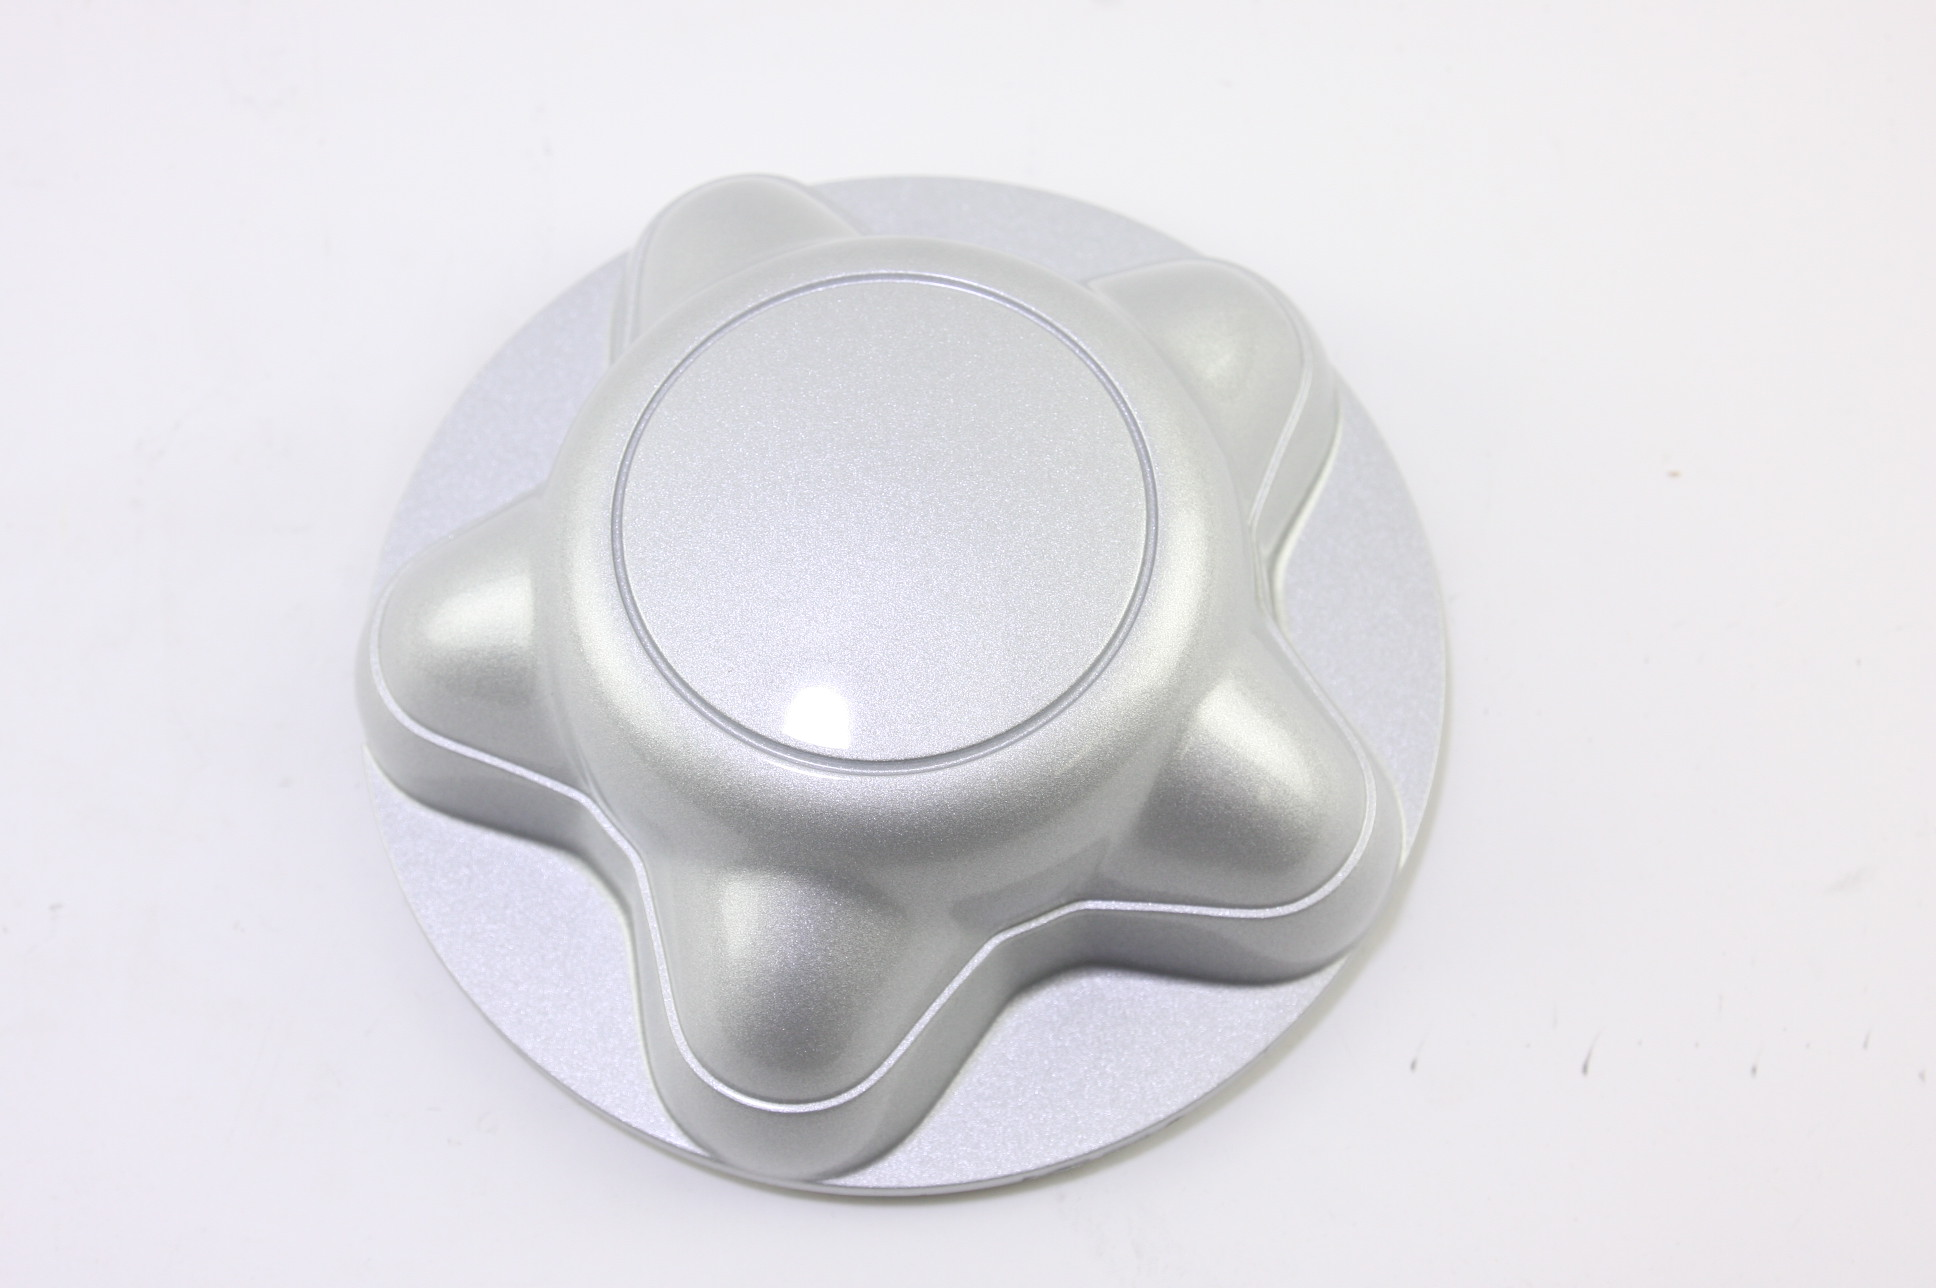 ** New OEM F65Z1130AA Ford 97-00 F-150 Wheel Cover Hub Center Cap Free Shipping - image 4